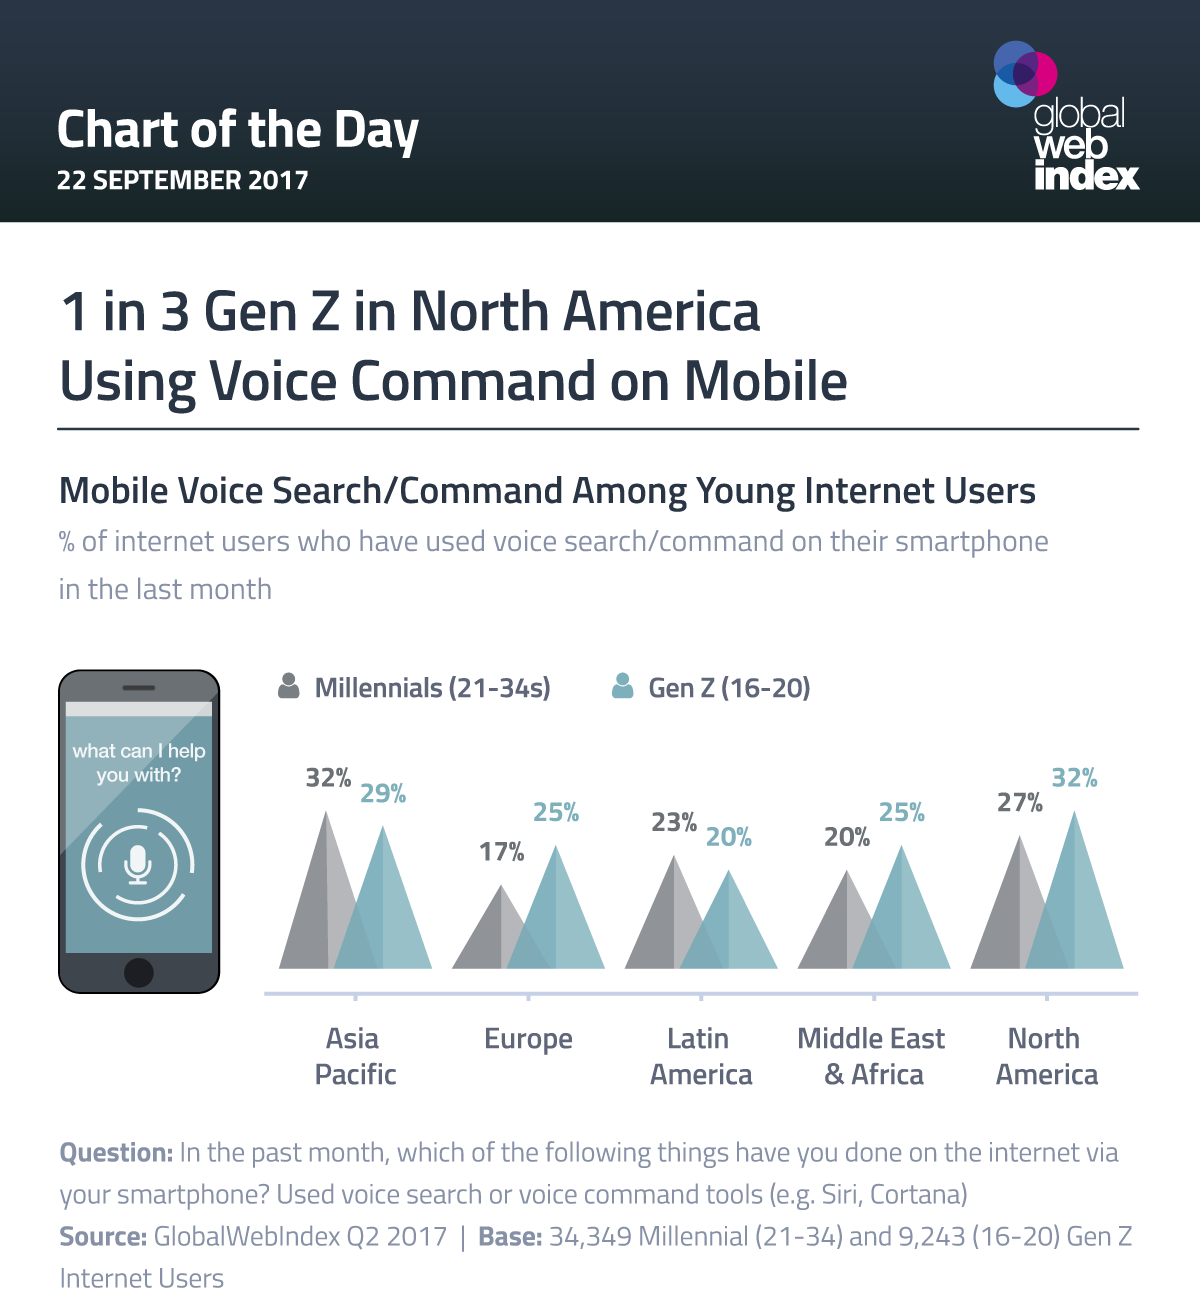 1 in 3 Gen Z in North America Using Voice Command on Mobile